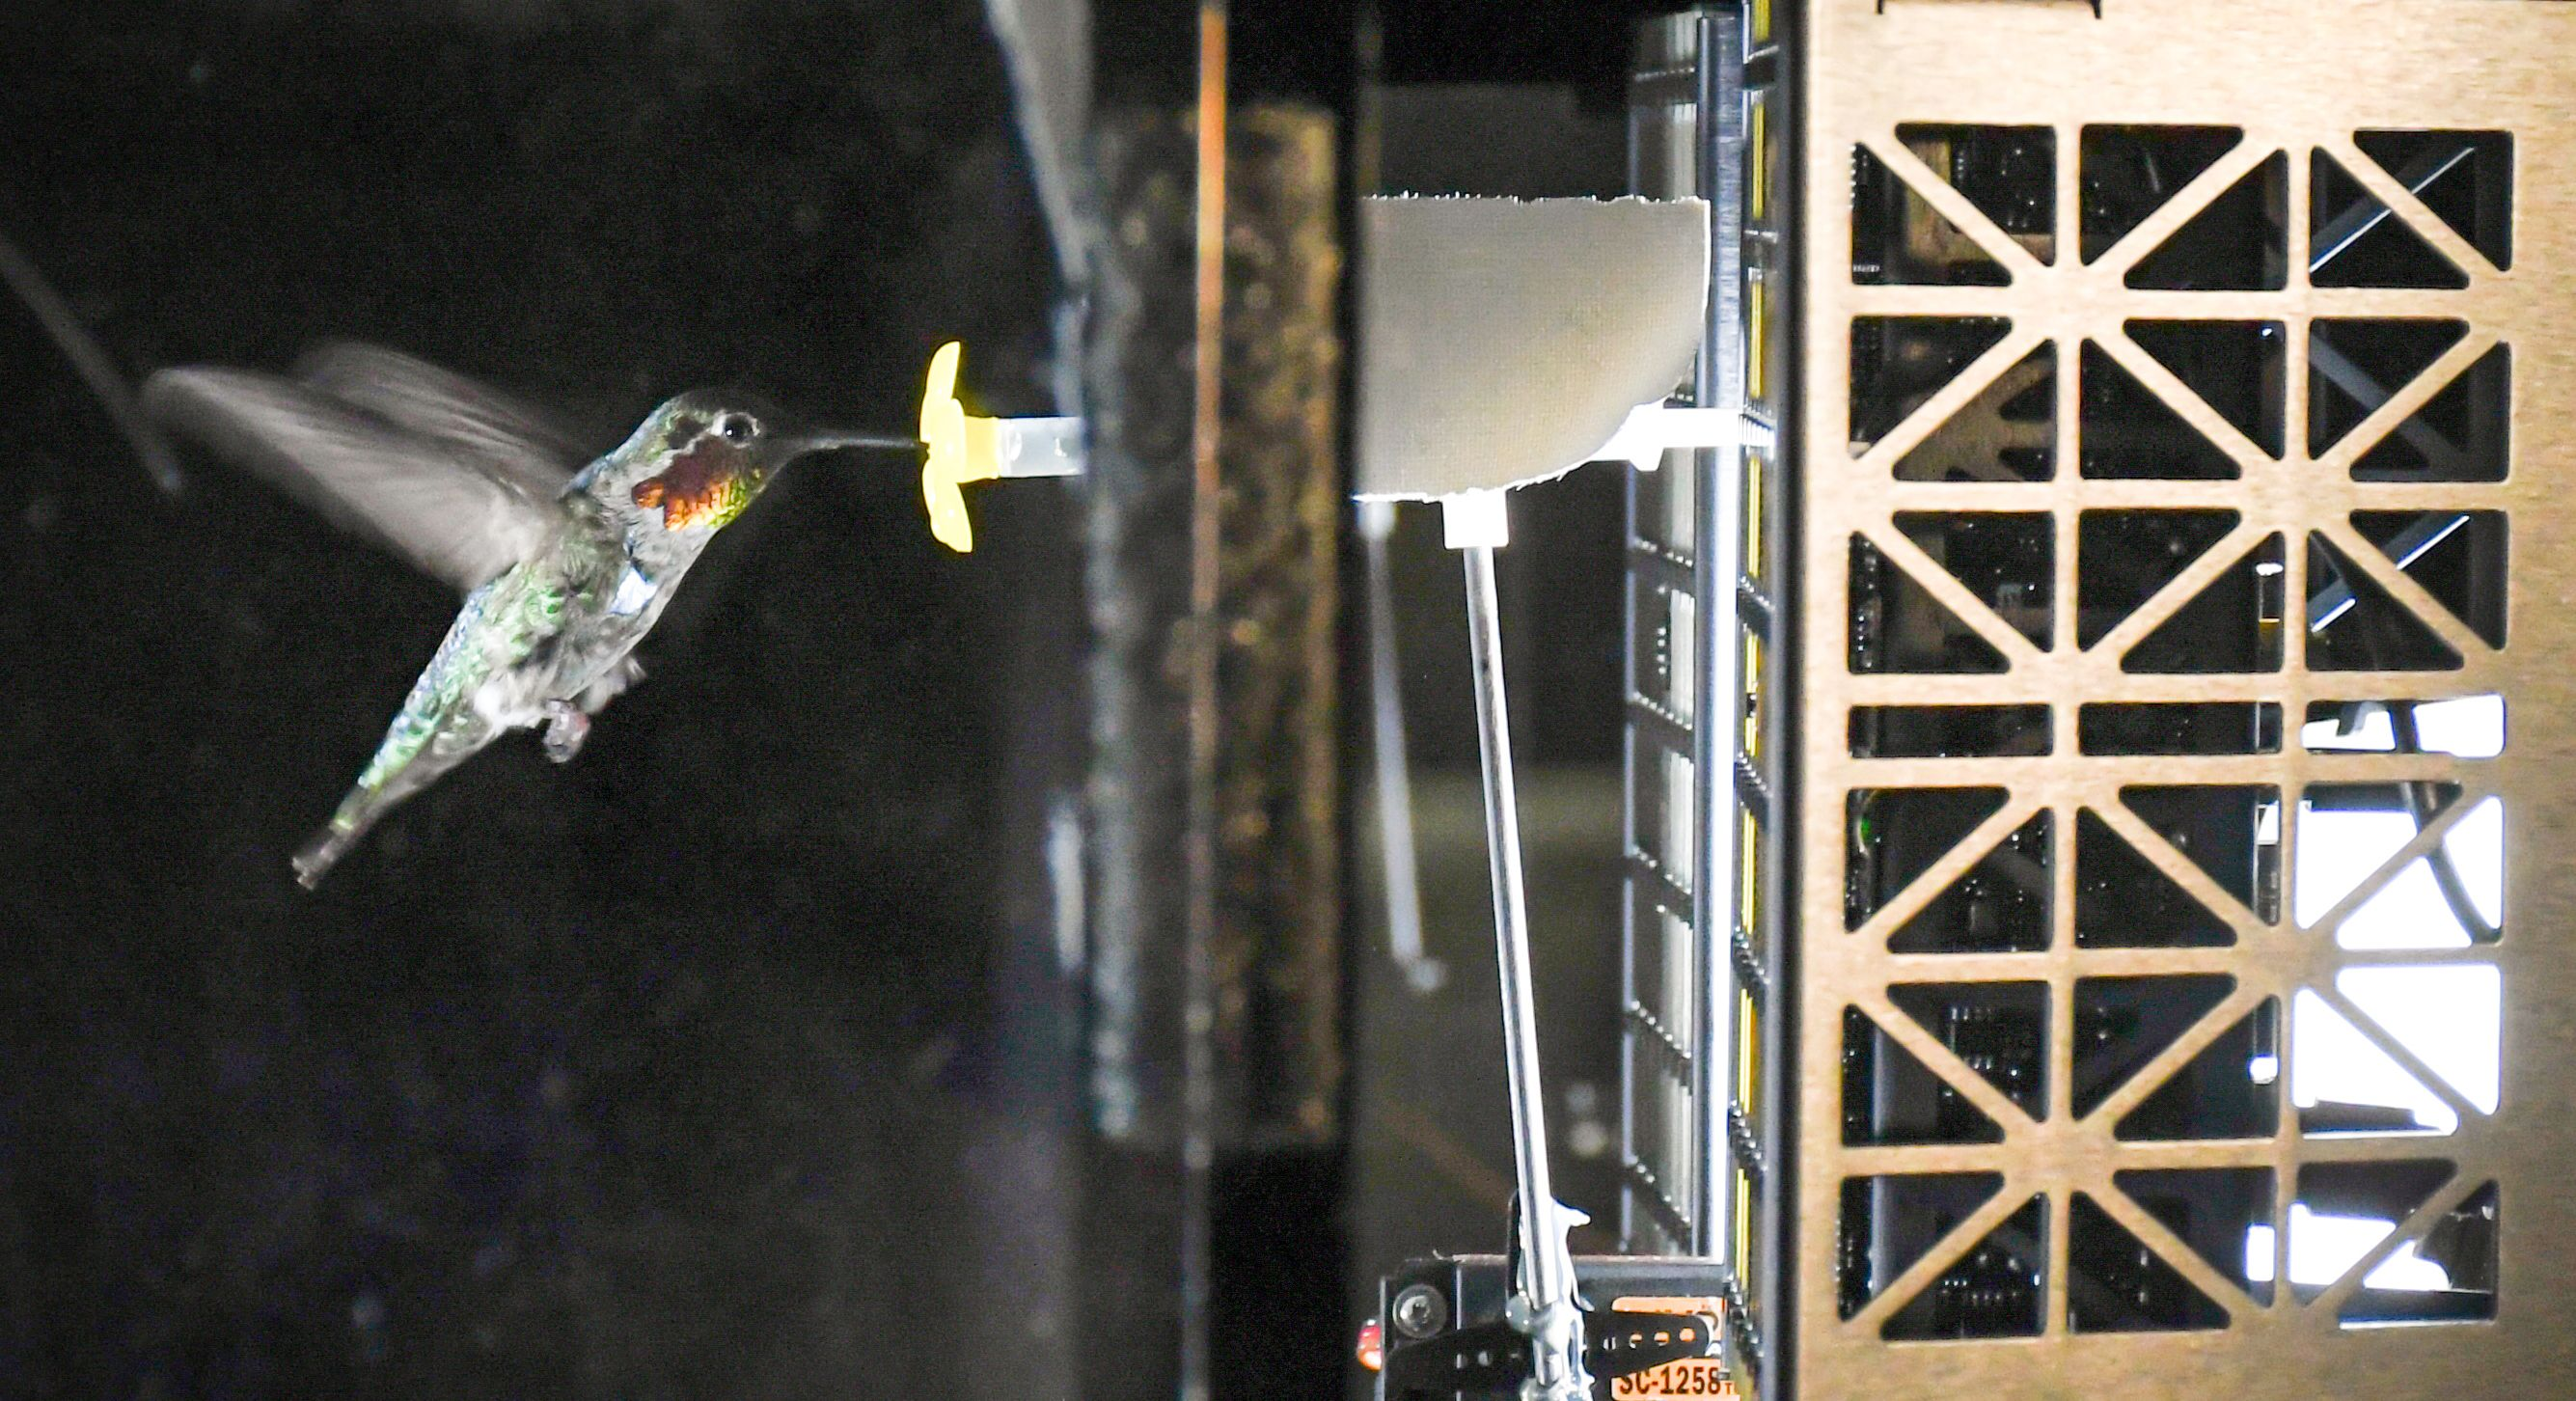 A hummingbird feeds in front of an acoustic camera array.